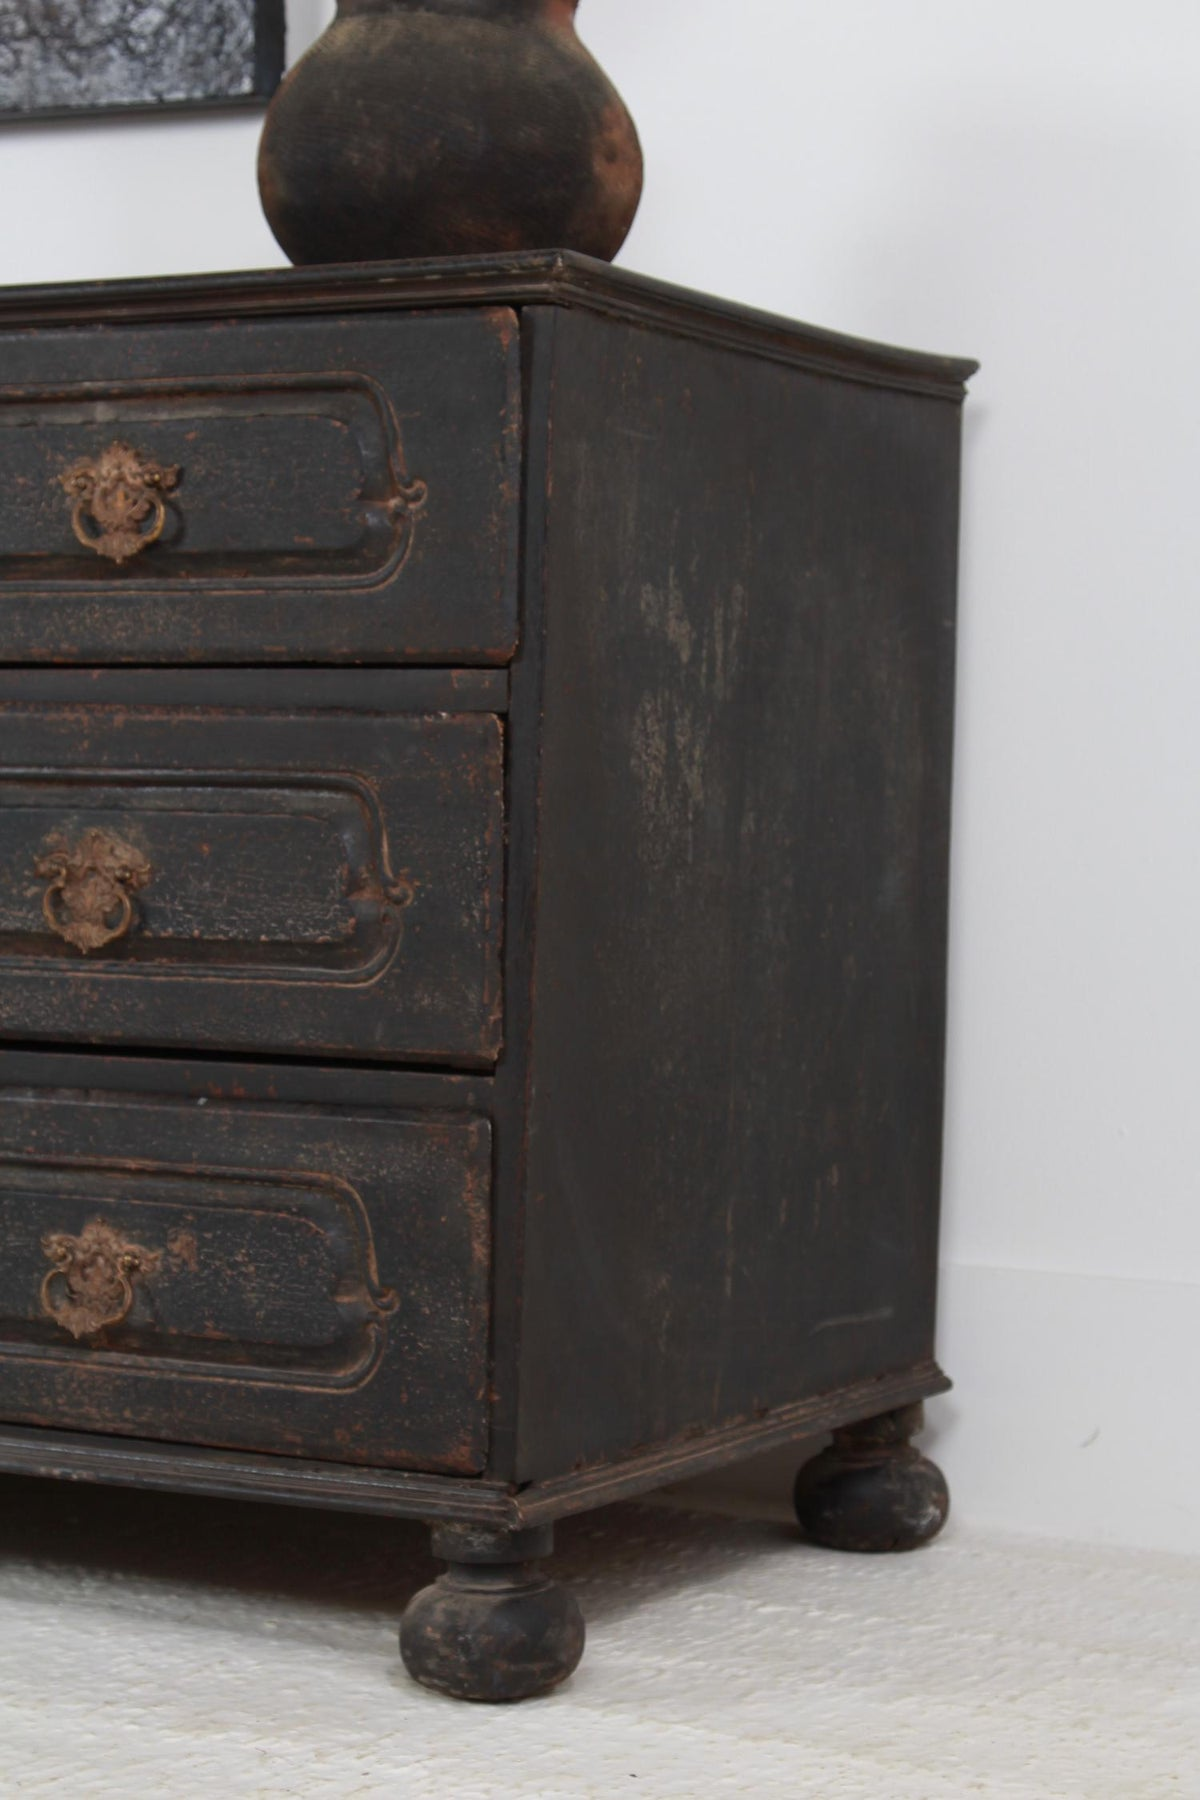 A Large 18thC French Oak Painted Chest of Drawers